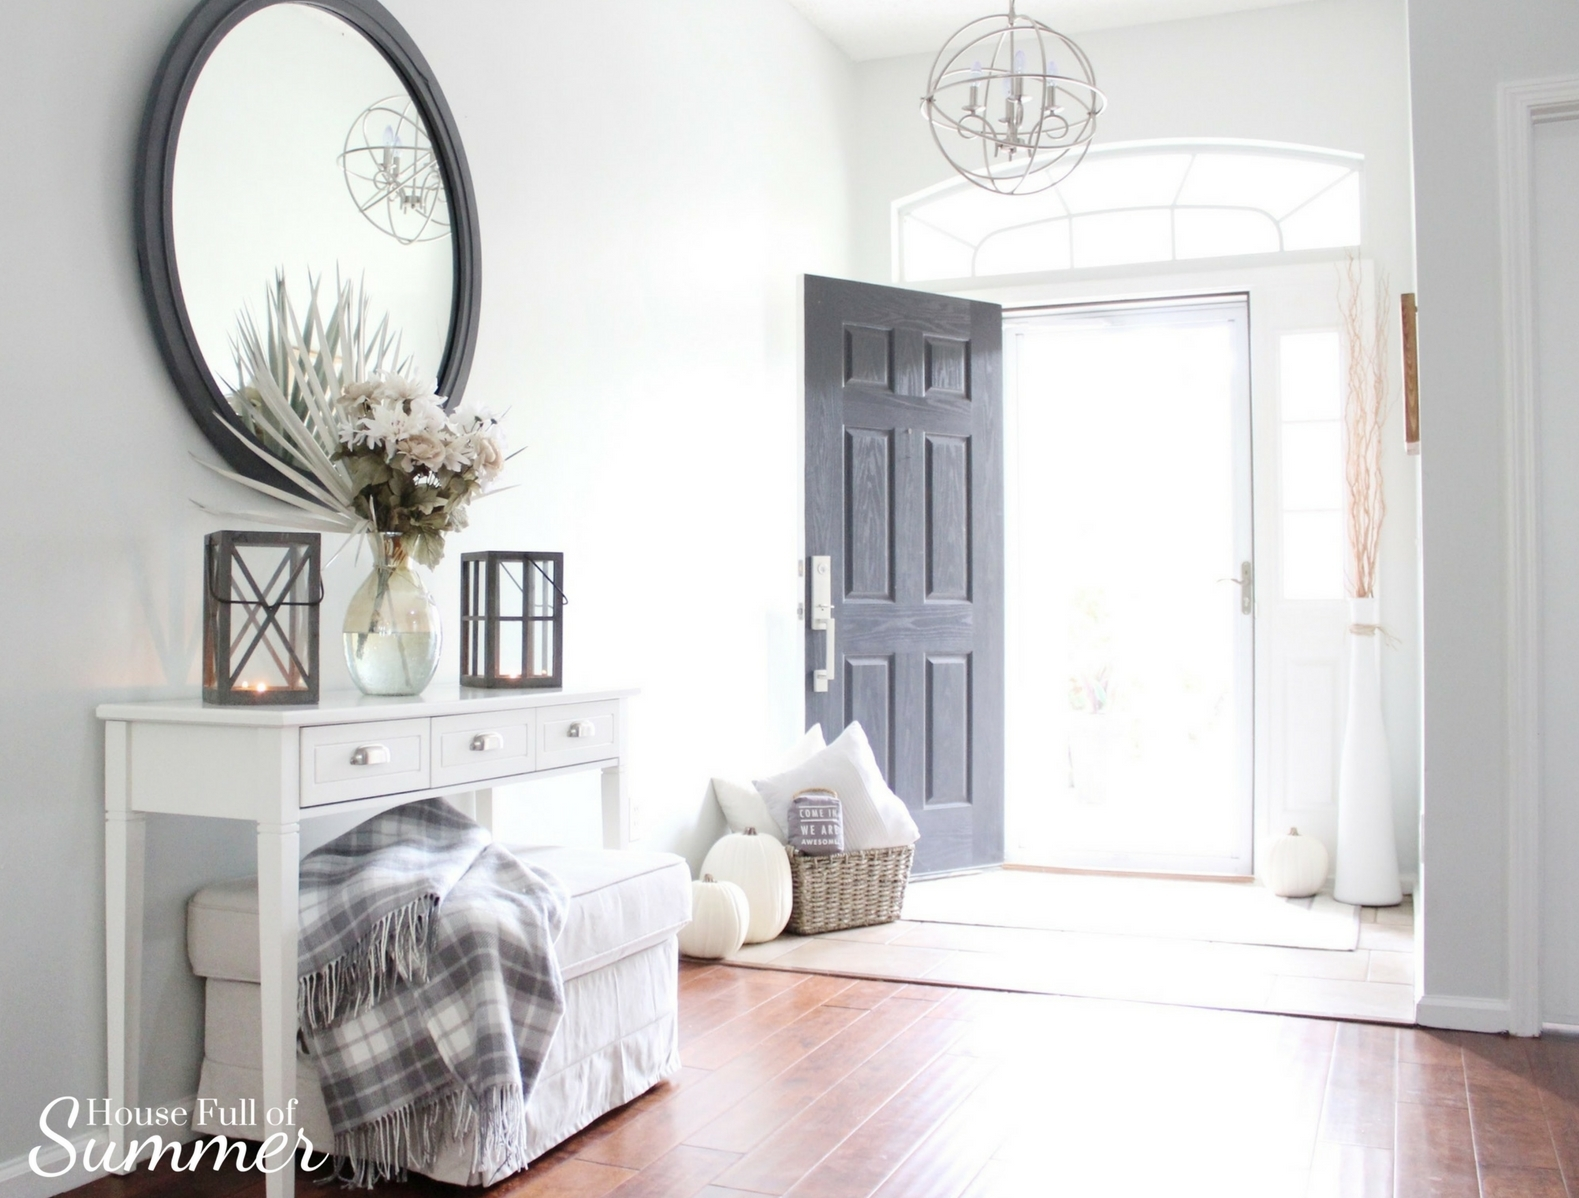 House Full of Summer: Fall Home Tour Blog Hop - Cozy, Coastal, Chic Foyer fall decorating ideas. Neutral interior, white pumpkins, front door decor, white console table, plaid throw, faux fall florals, entryway ideas, wood floors, orb chandelier, round mirror, lanterns, coastal fall, tropical fall, palm fronds